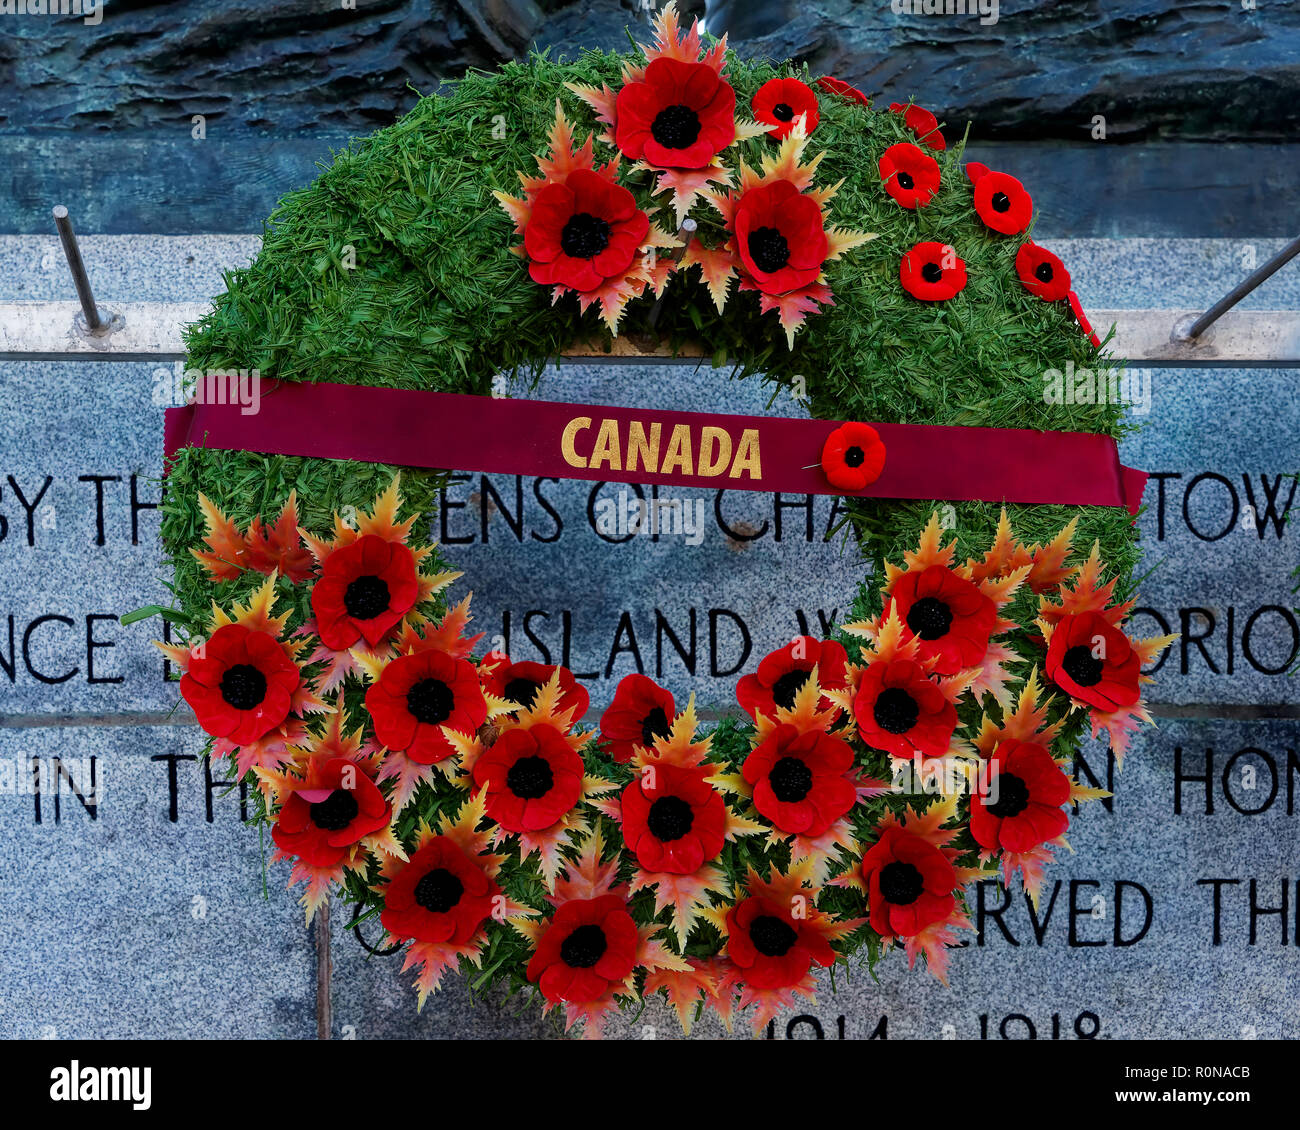 CHARLOTTETOWN, PE, CANADA - DEC. 8, 2017: A Remembrance Day wreath covered in poppies hanging on a Canadian war memorial. - Stock Image